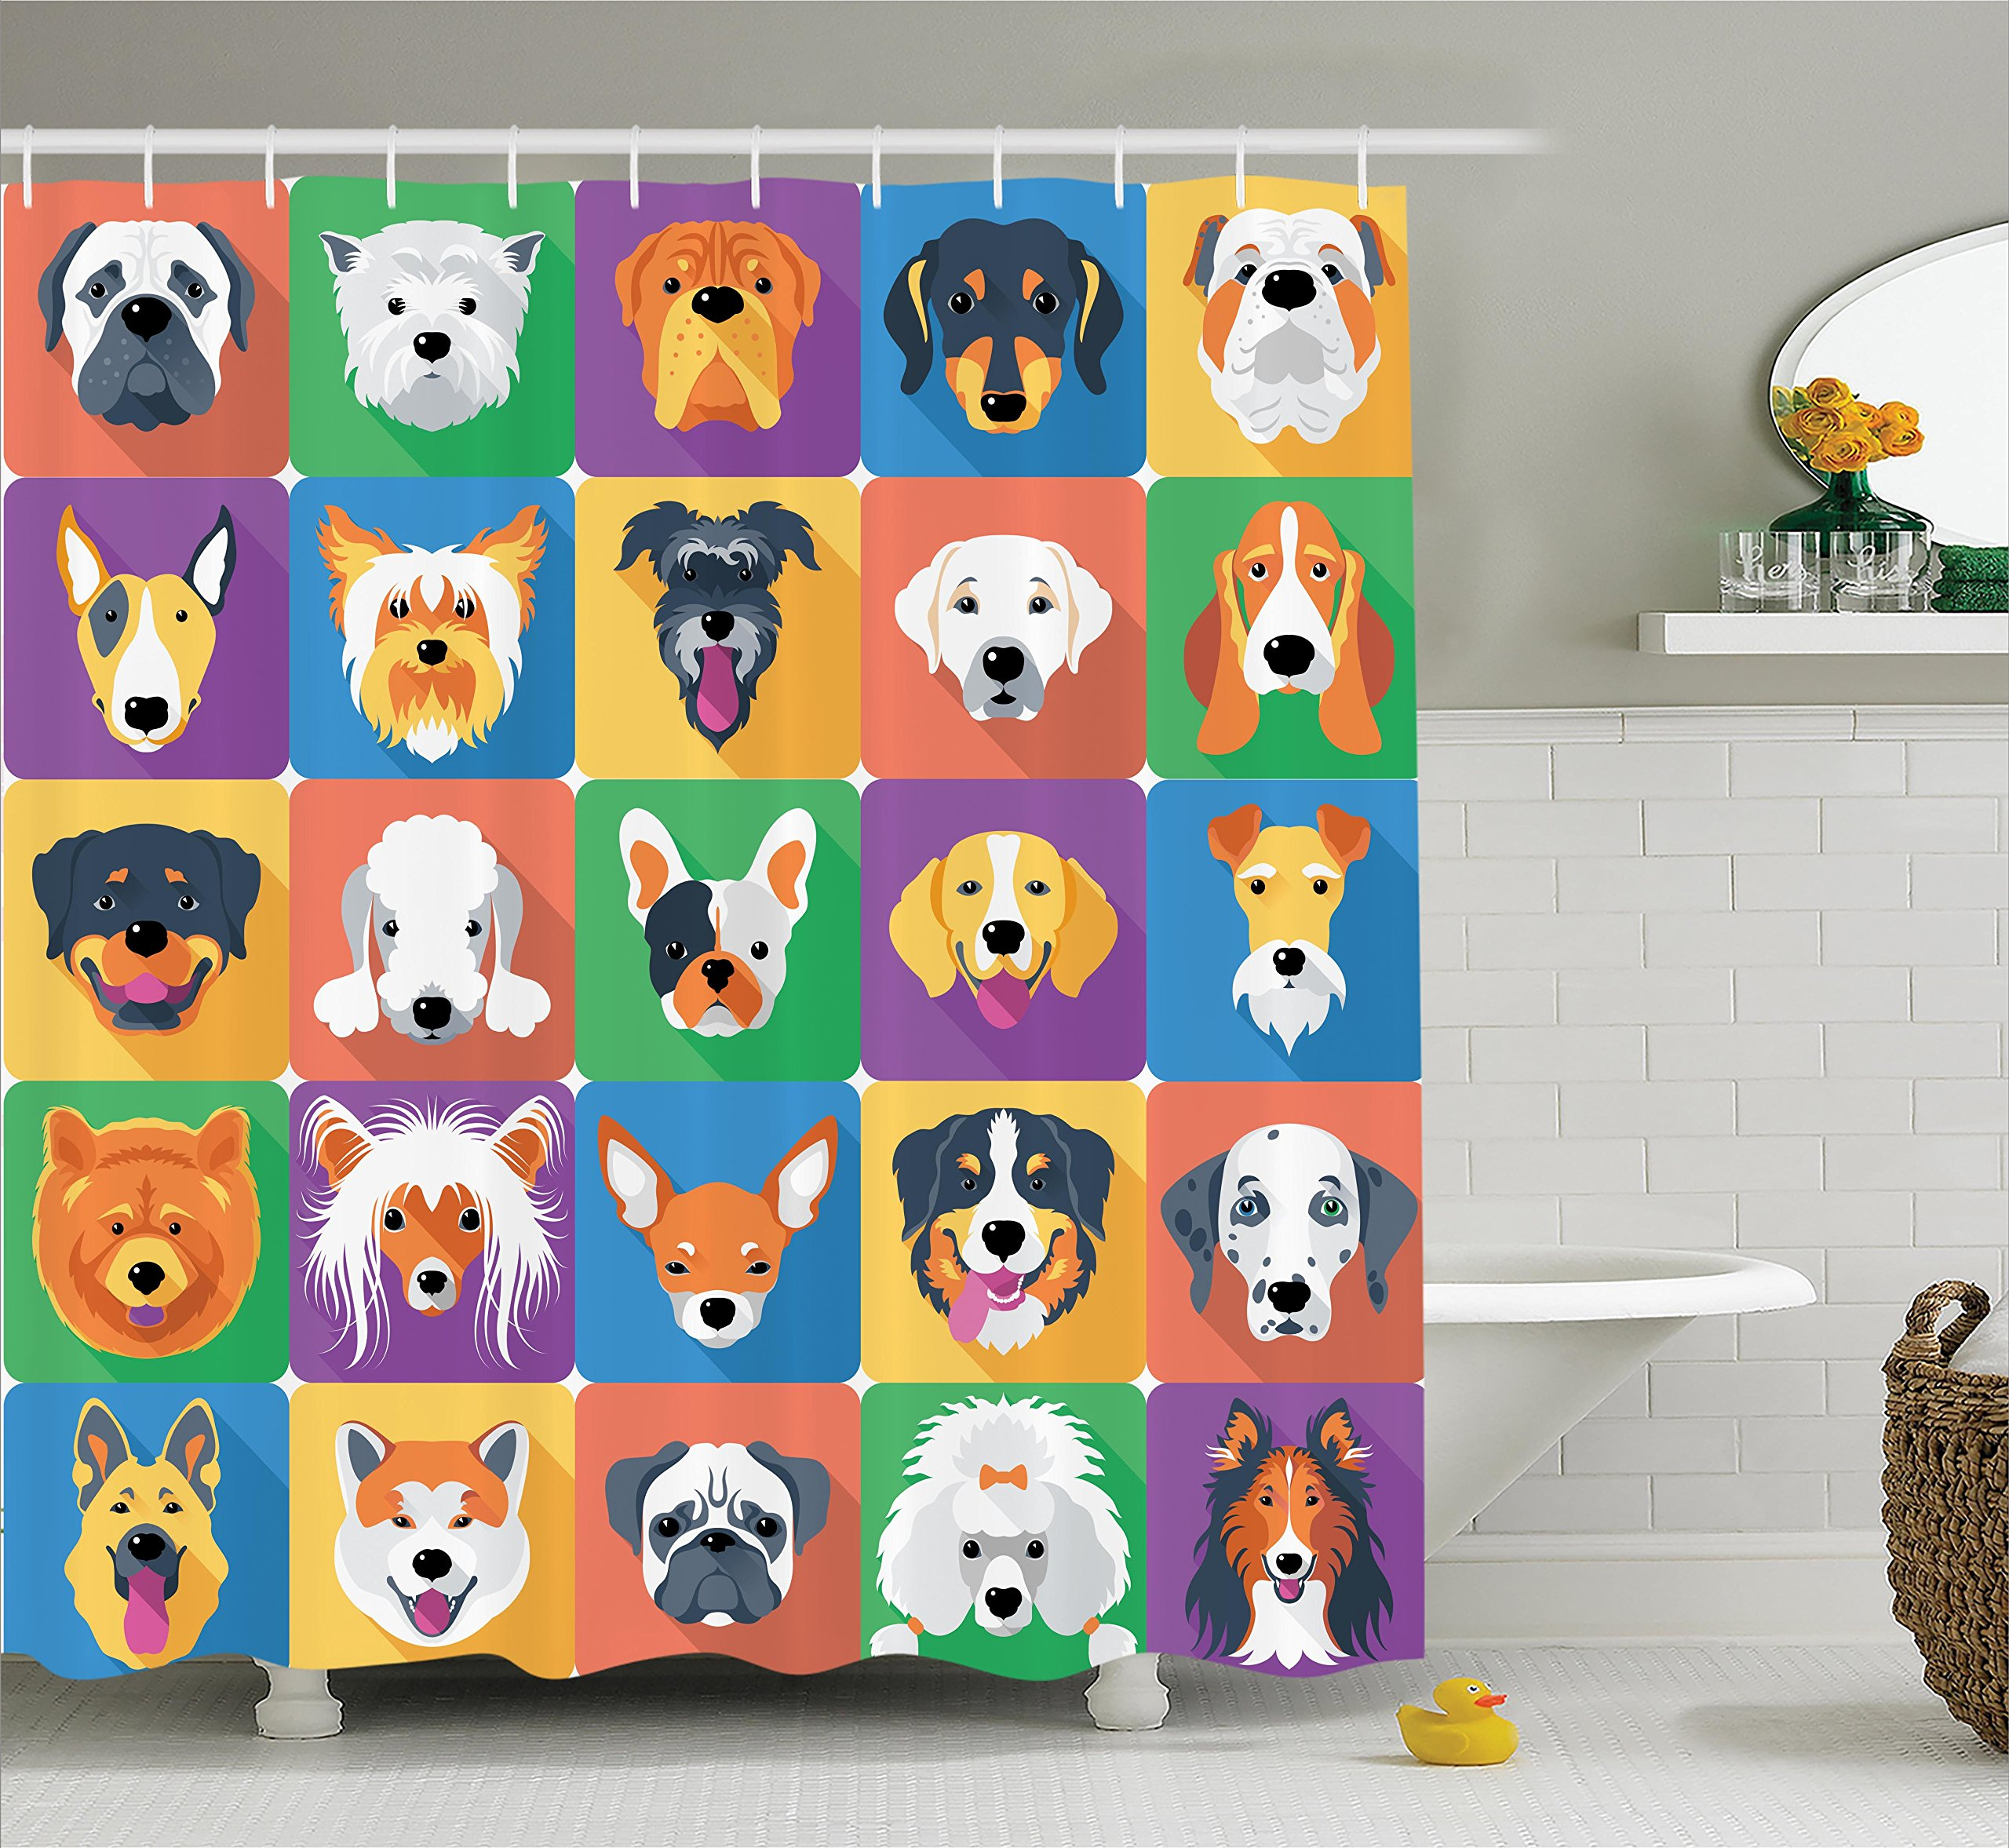 Ambesonne Dog Lover Decor Shower Curtain, Dog Breeds Profiles Pets Shepherd Terrier Labrador Domestic Animals Illustration, Fabric Bathroom Set with Hooks, 69W X 70L inches Long, Purple and Green